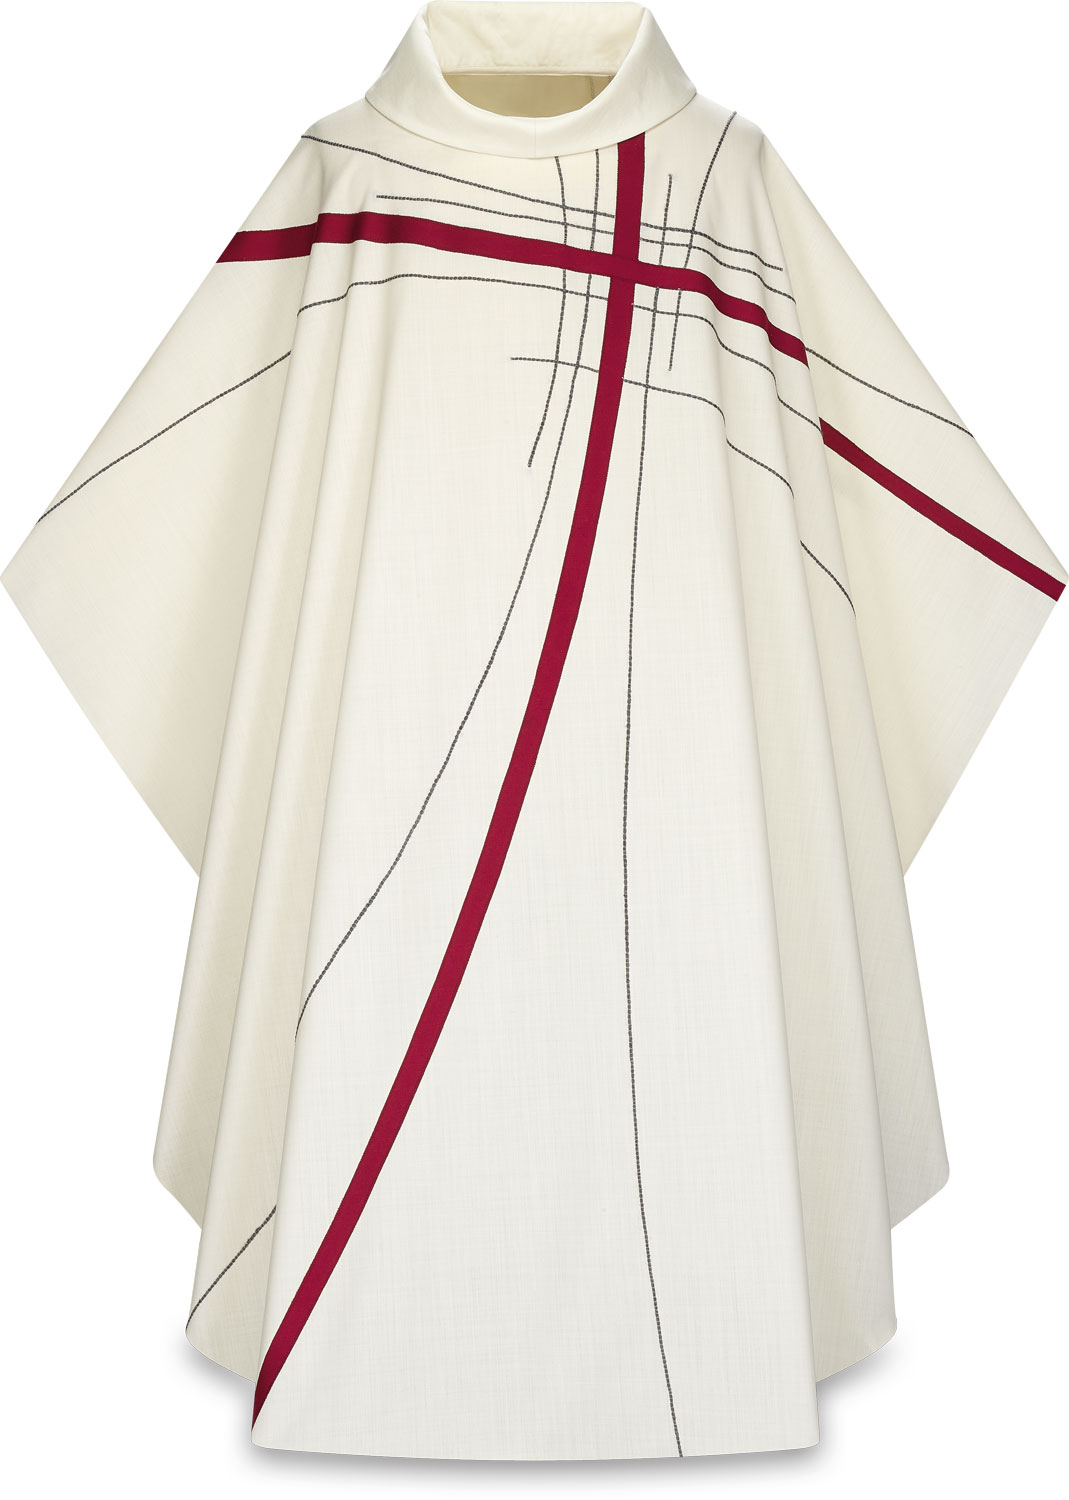 Chasuble | White | 5226 | Slabbinck